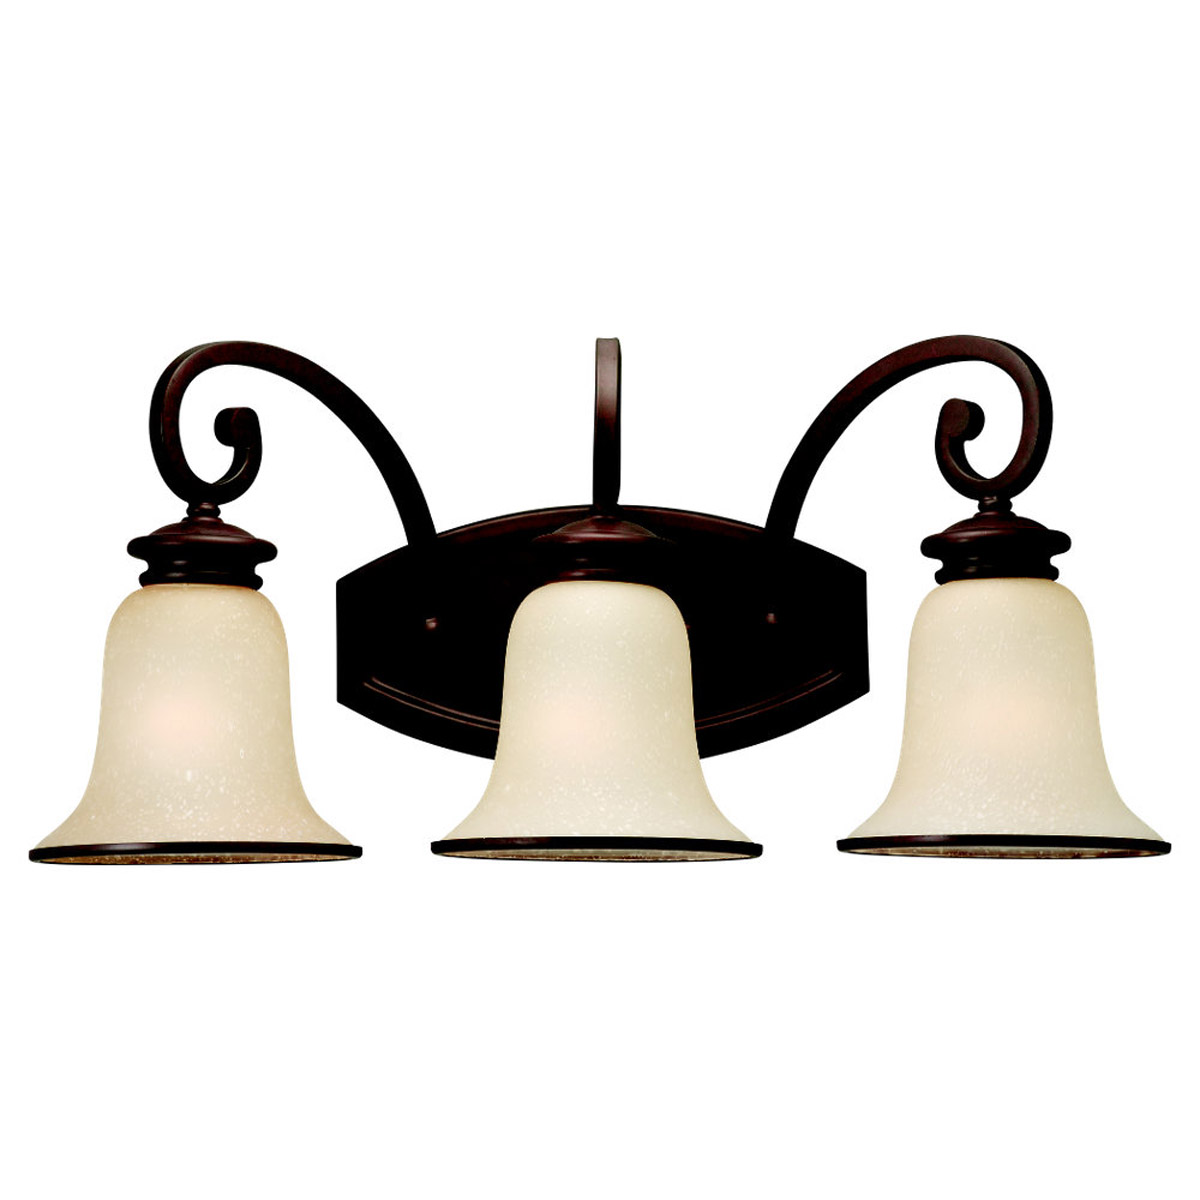 Sea Gull Lighting Acadia 3 Light Bath Vanity in Misted Bronze 44146-814